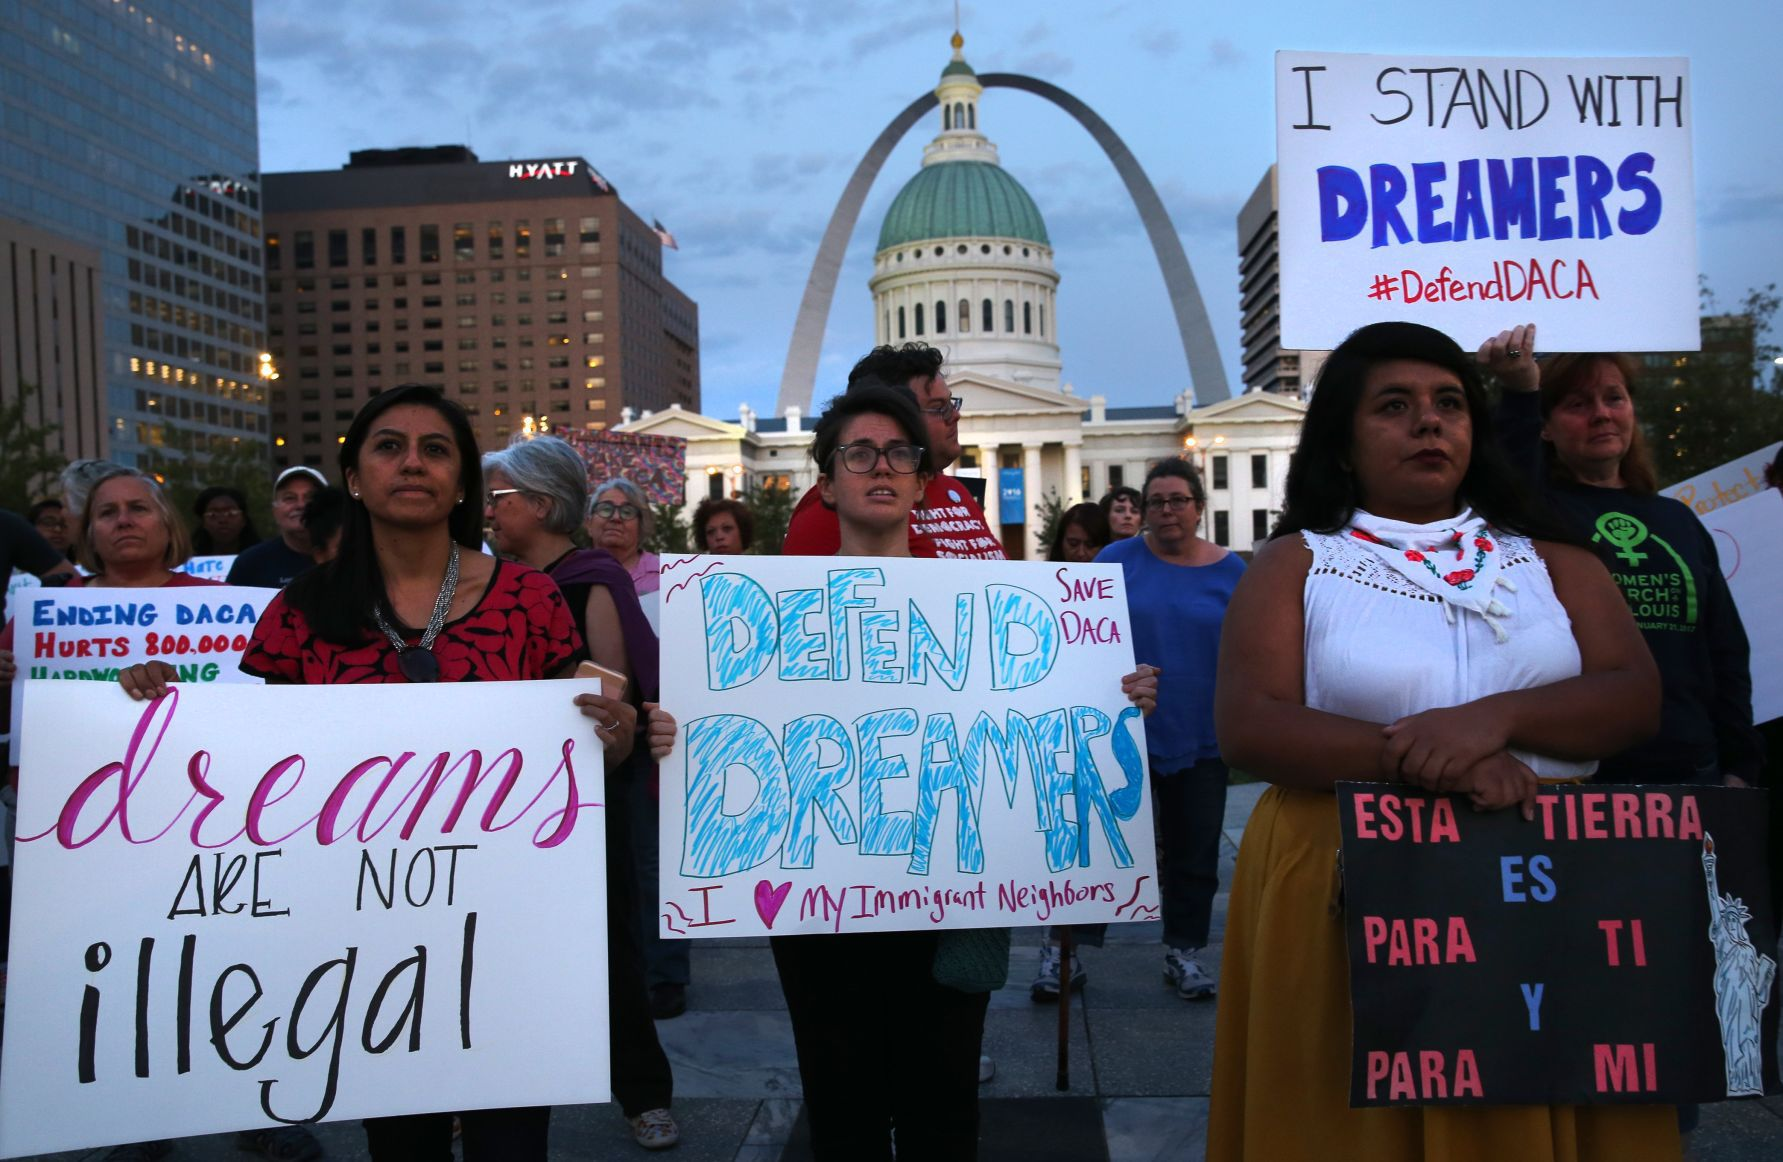 Congress should have halted DACA